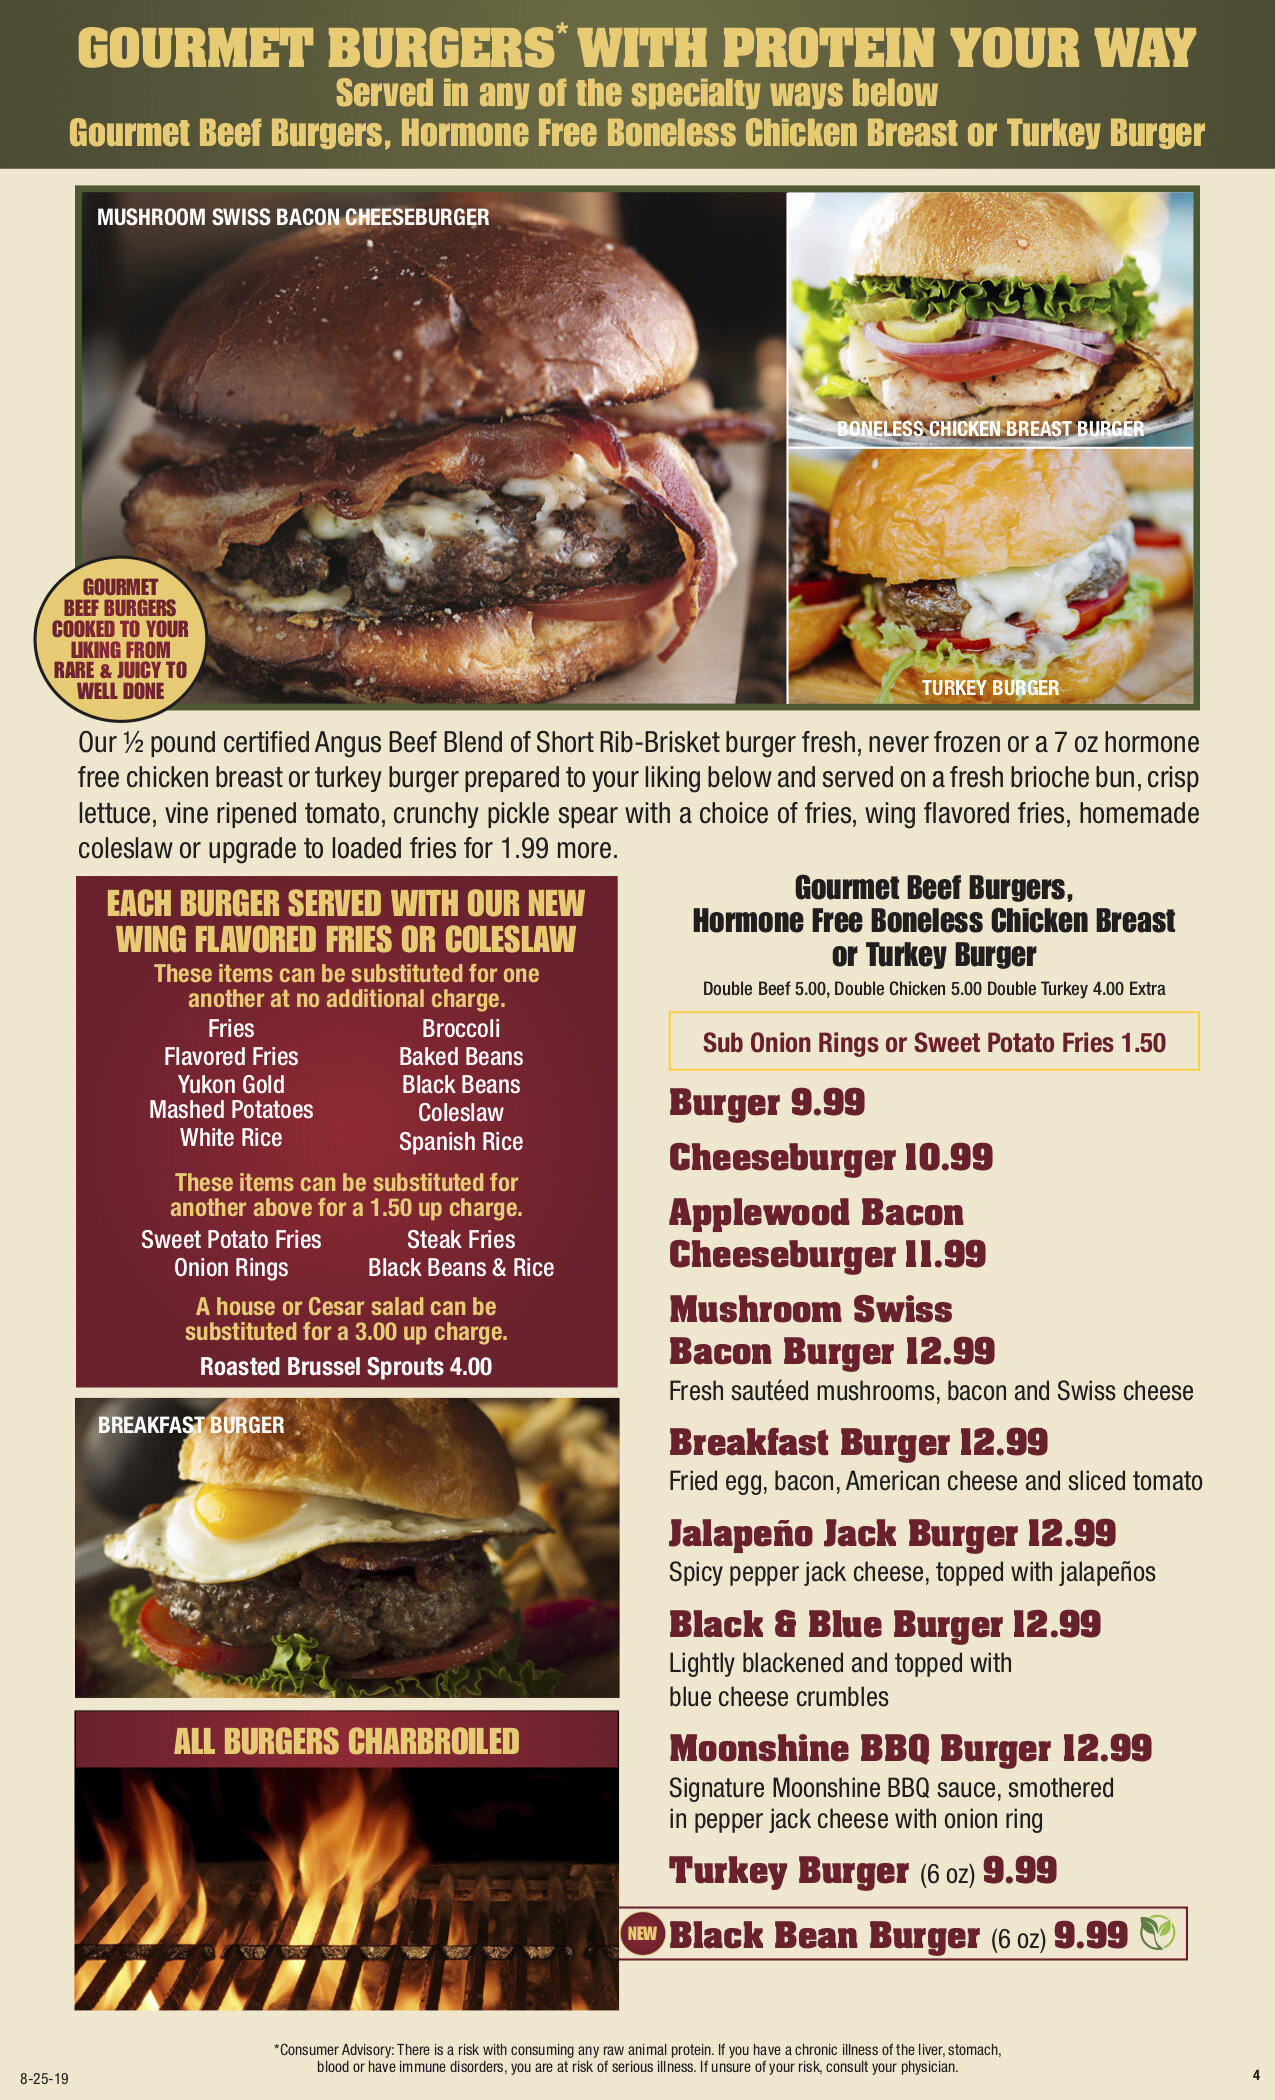 New Menu FTM-Naples Page 5-9-2019.jpg